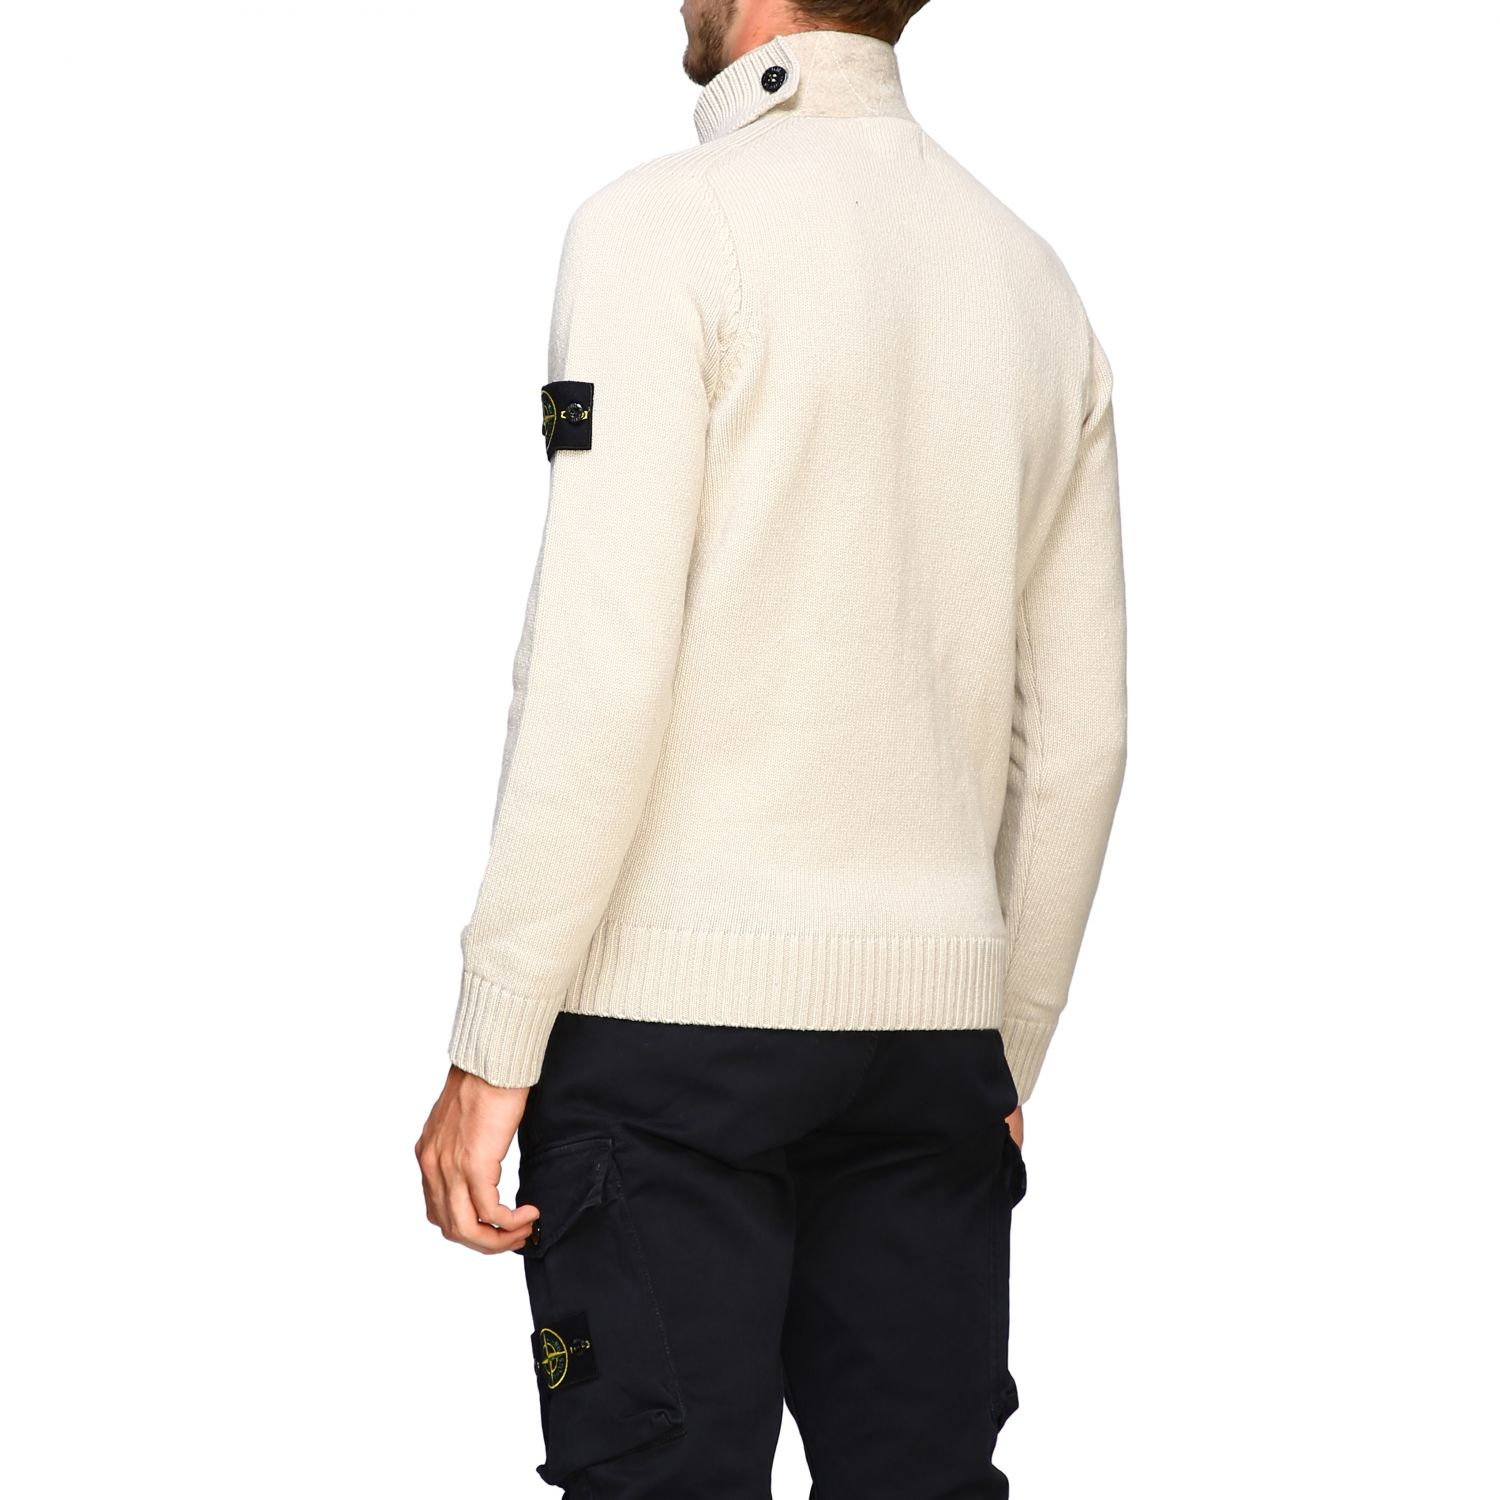 Jersey hombre Stone Island arena 3